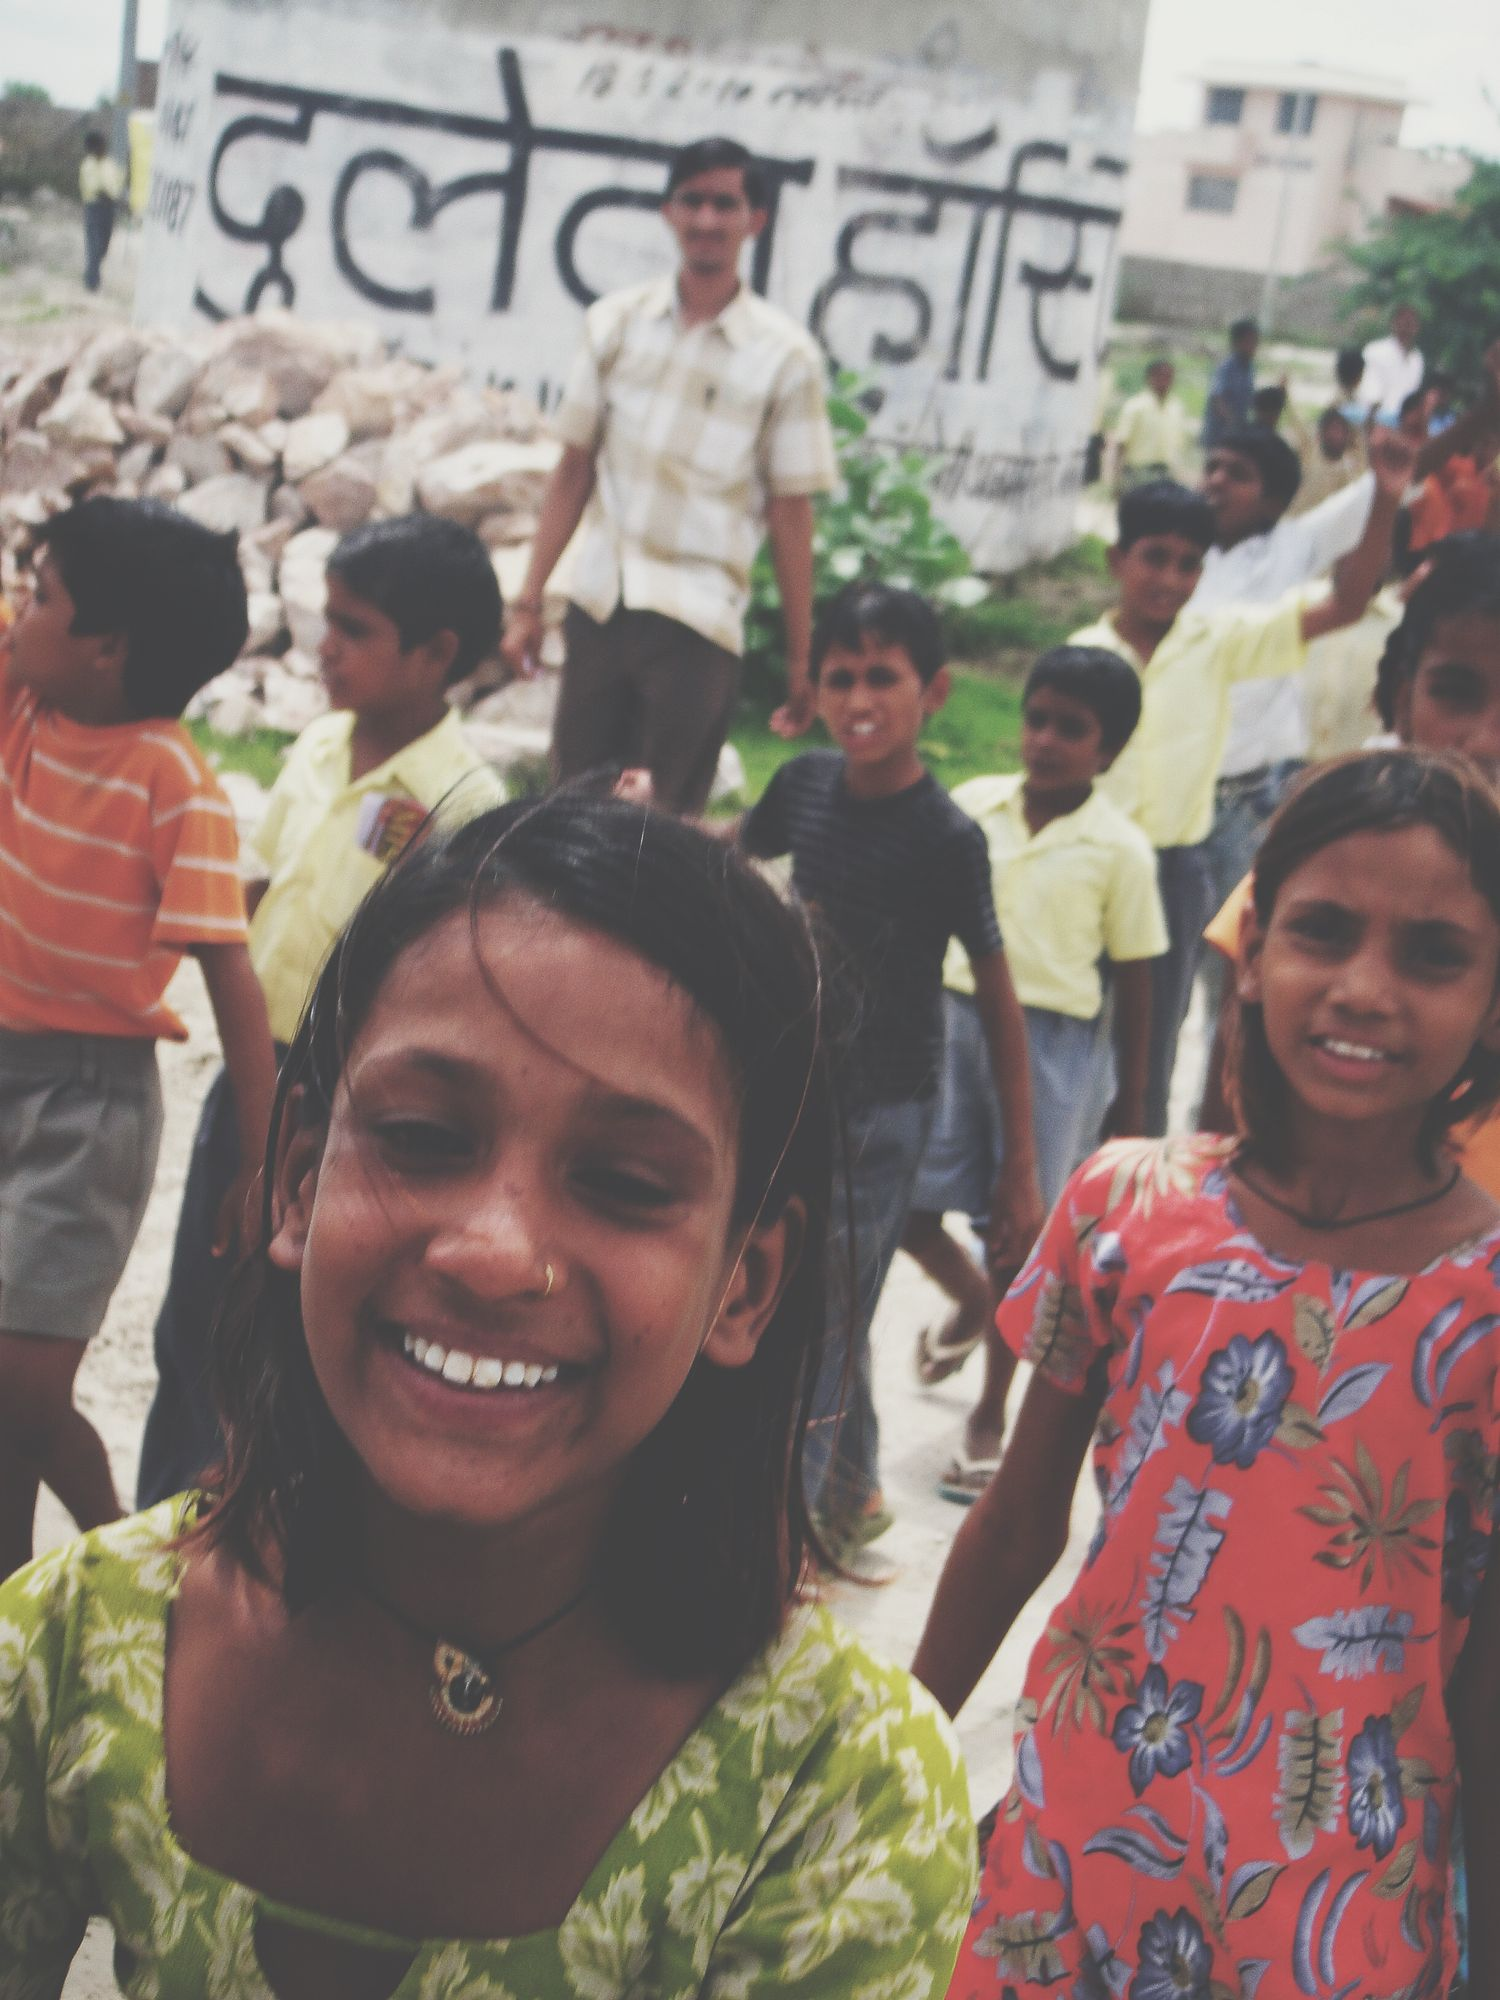 Nitika Jain - The Age of Happiness | LensCulture